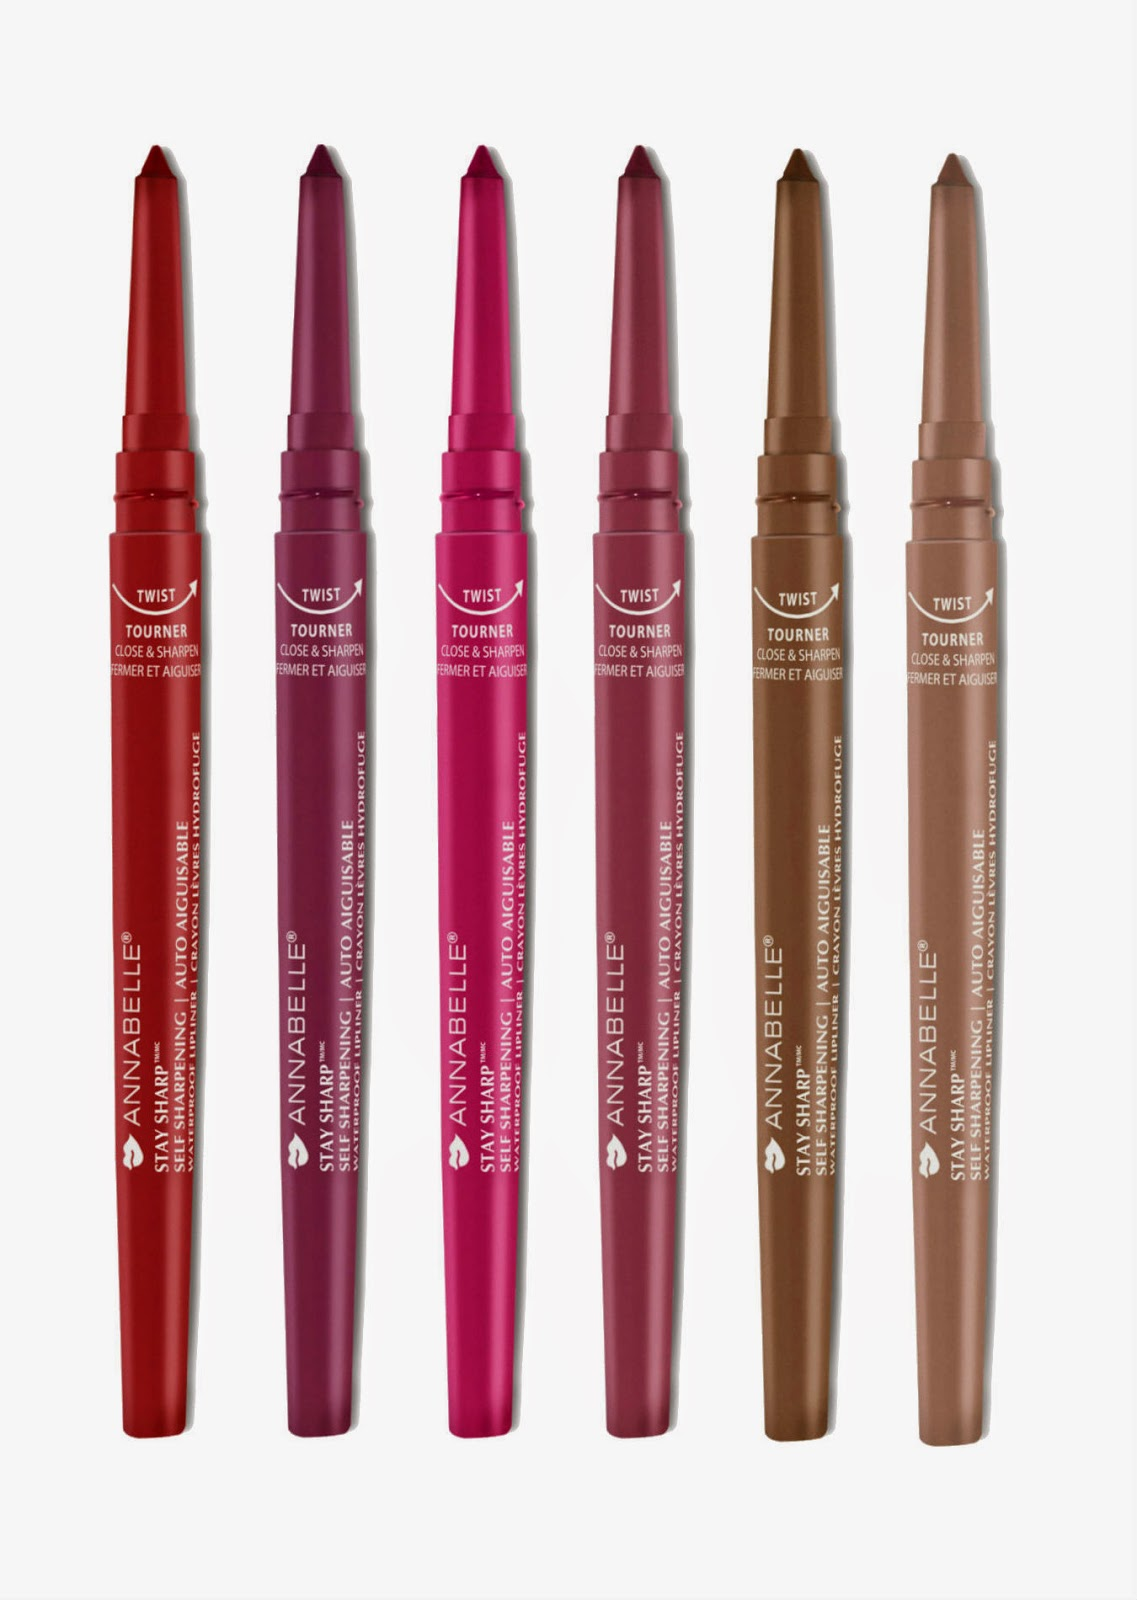 Annabelle Cosmetics Stay Sharp Waterproof Lipliner in Glam Red, Berry, Strike A Rose, Vintage, Java, Nude